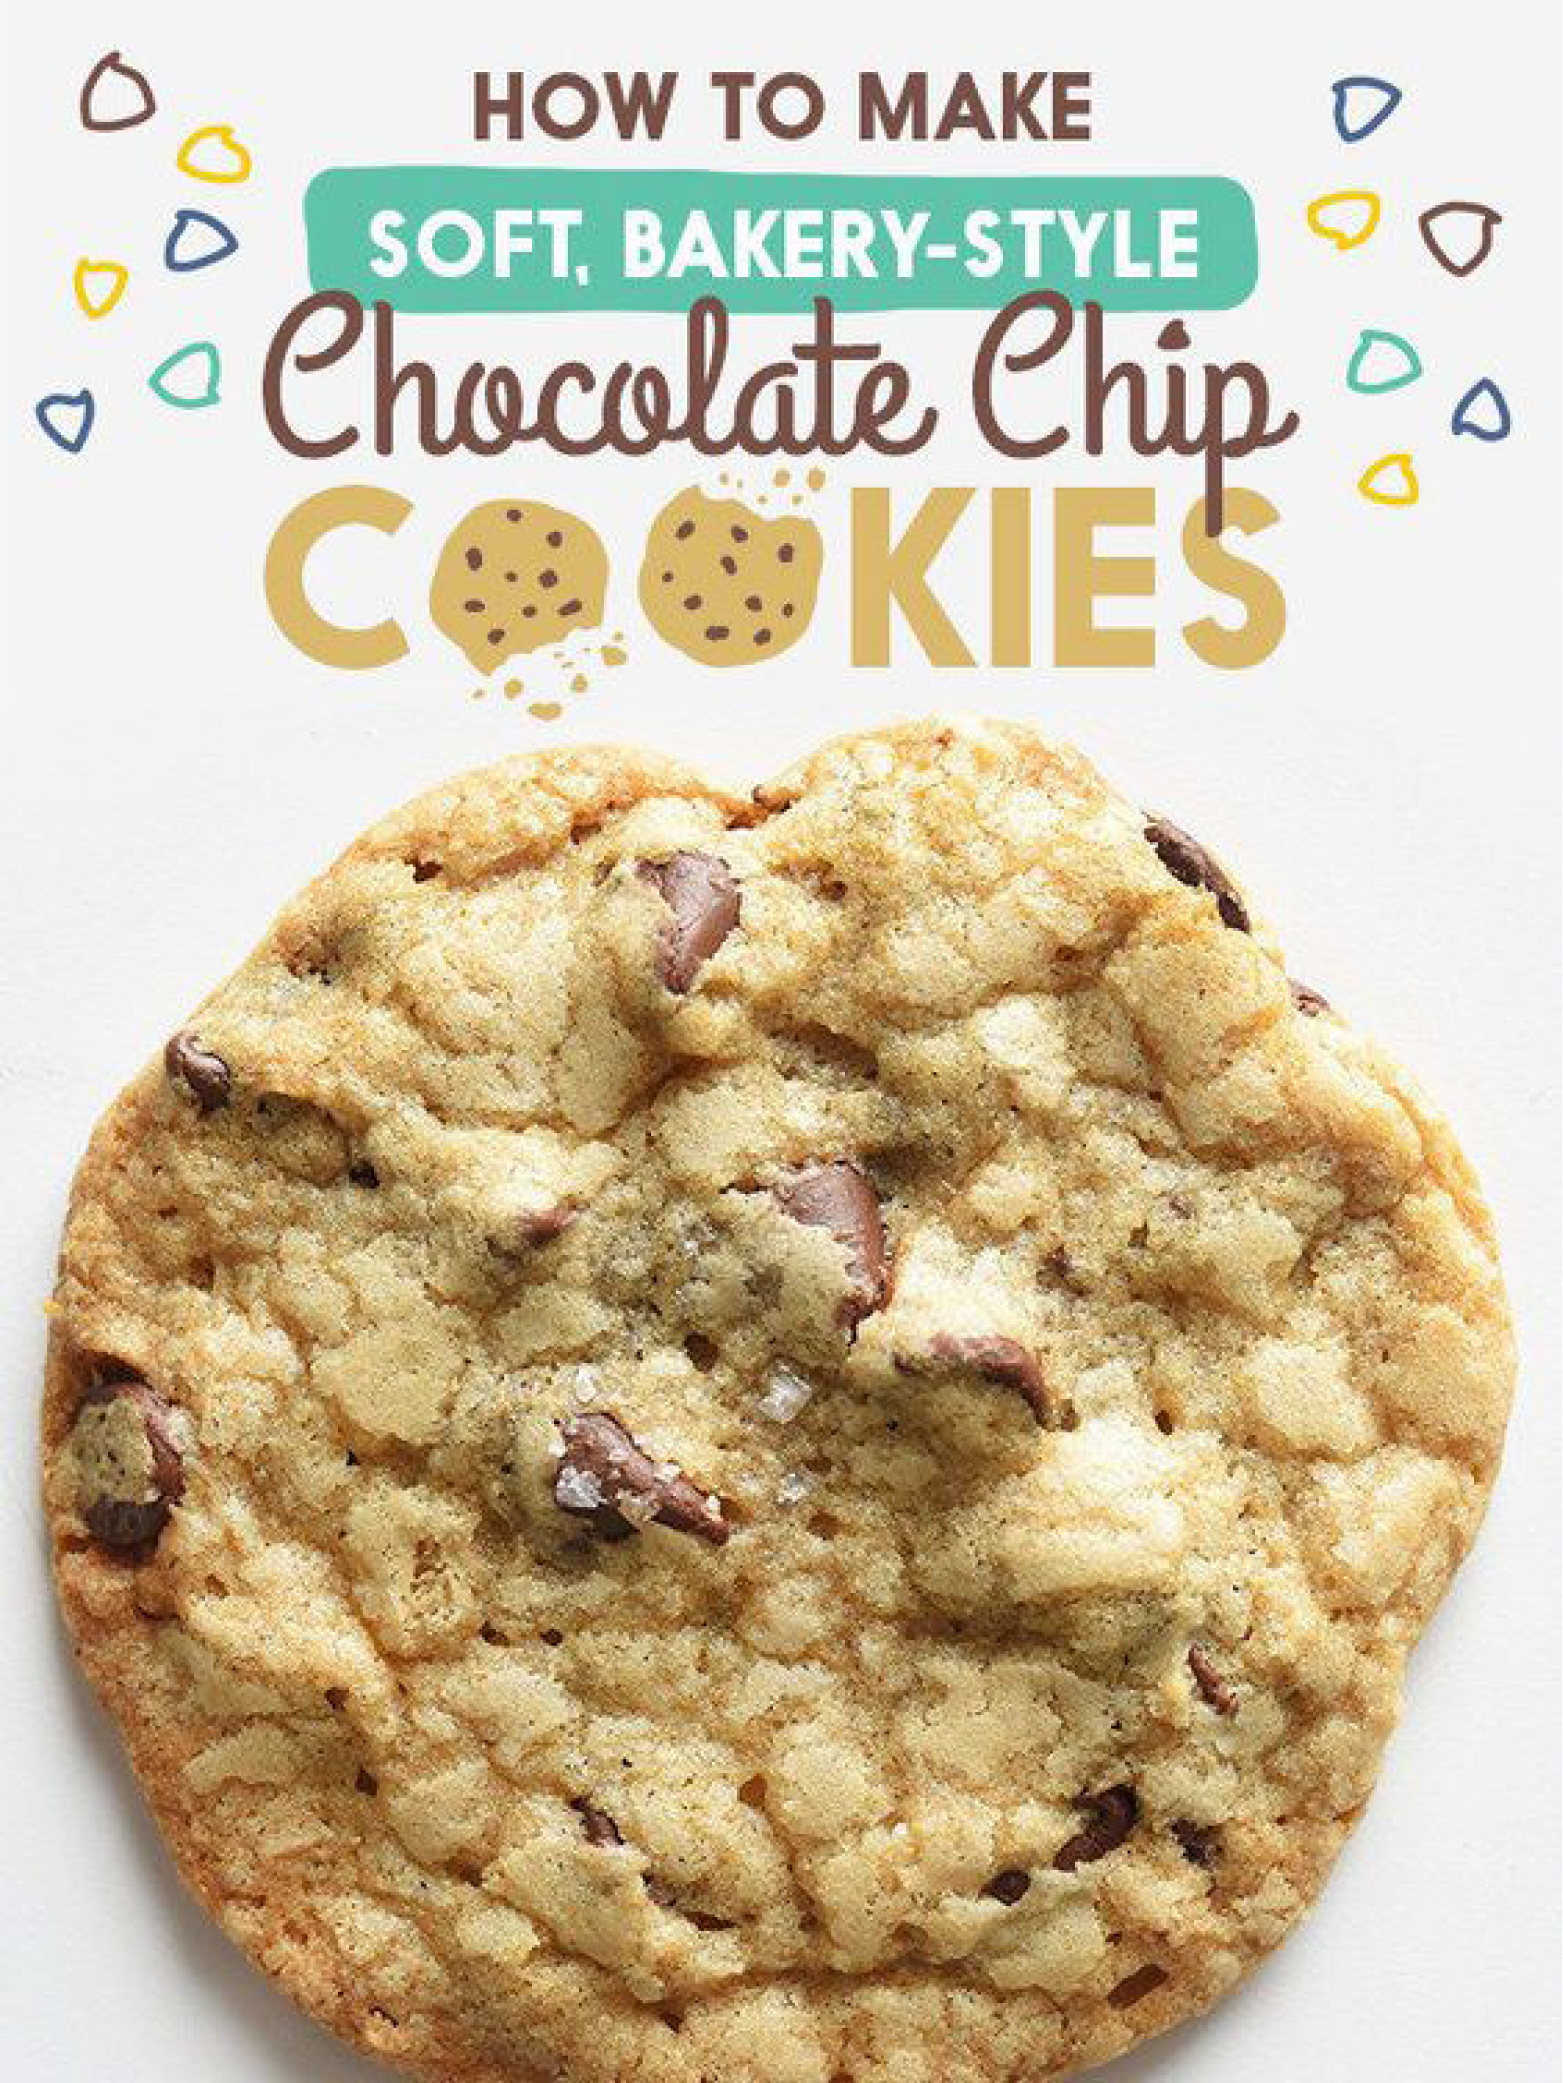 How To Make Tasty Bakery-Style Chocolate Chip Cookies  Buzzfeed